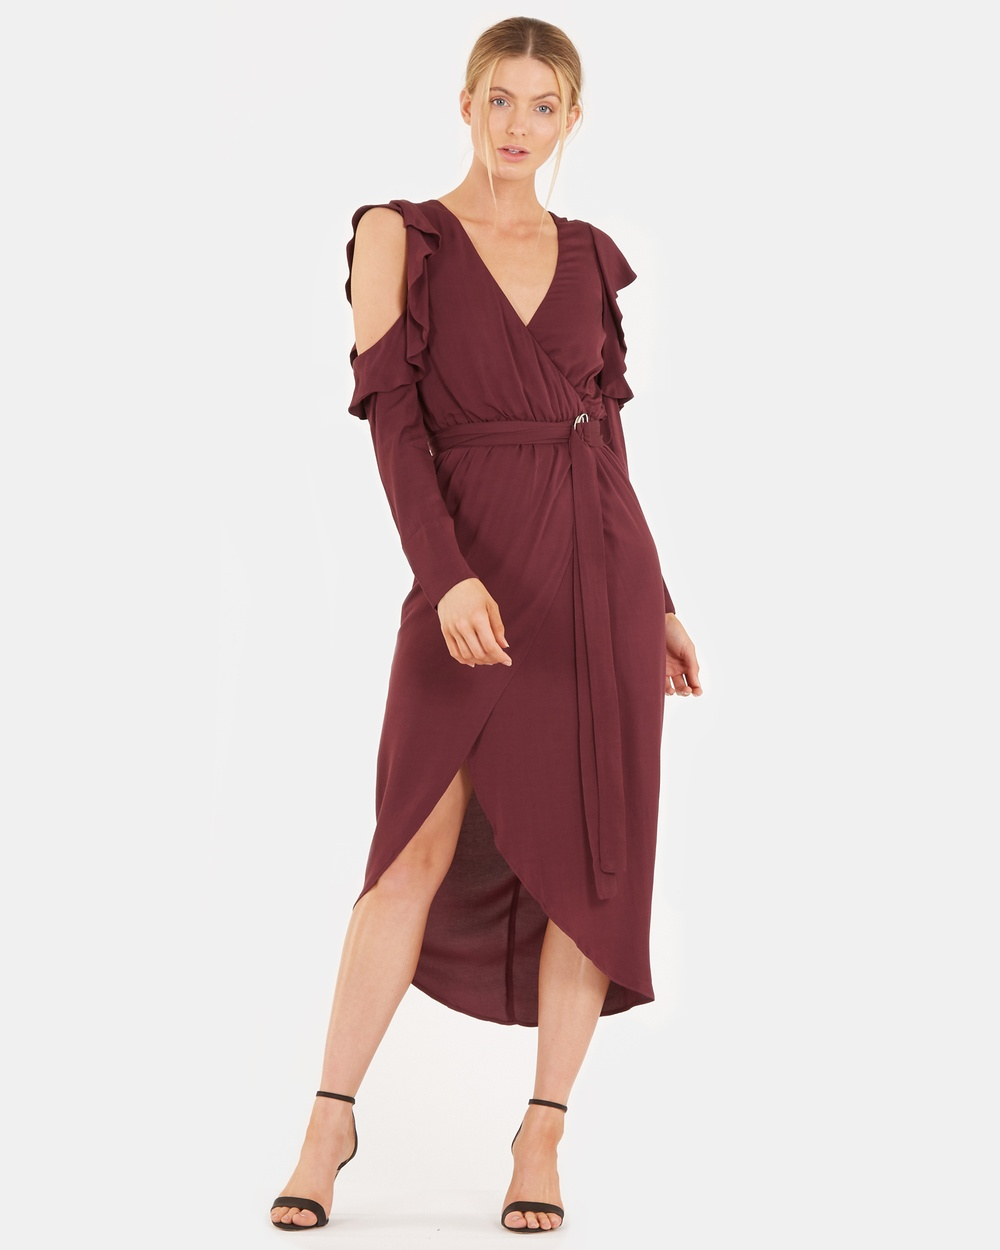 Amelius Wine Belize Dress